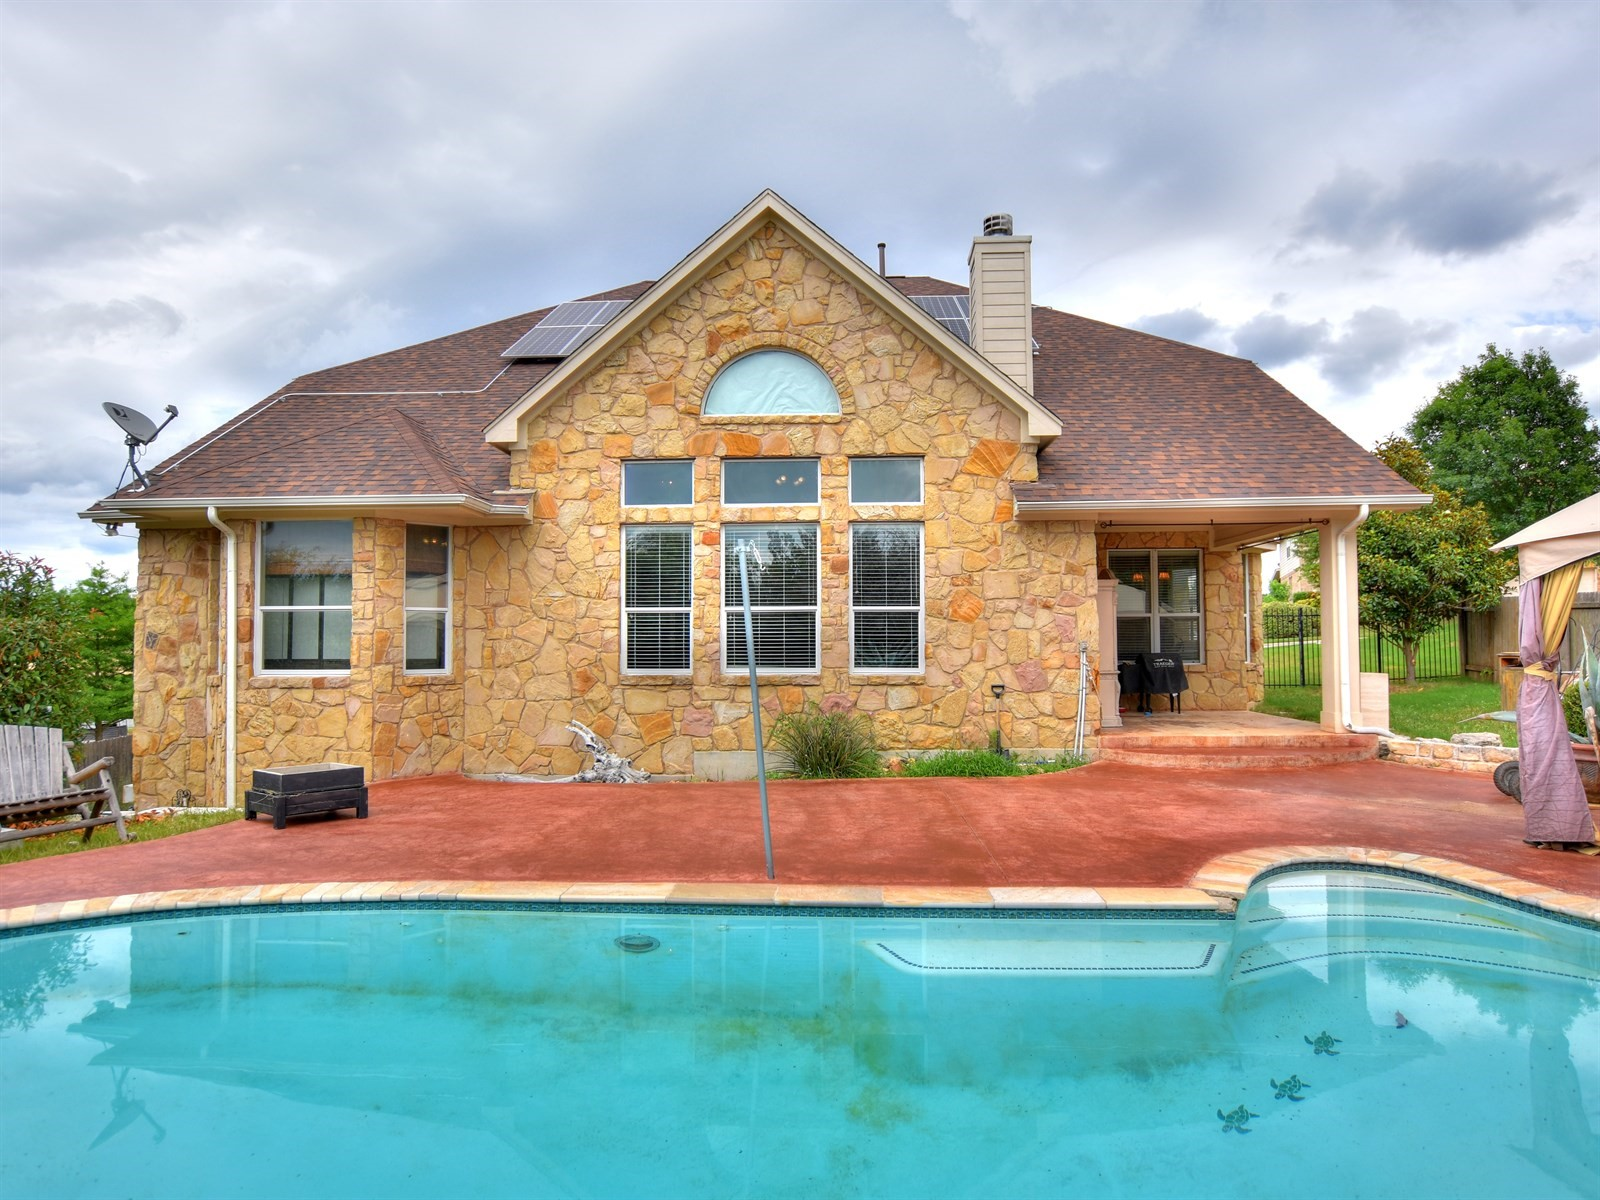 5124 Texas Bluebell Dr Spicewood TX | Lake Travis Home for Sale | Lori Wakefield REALTOR | Keller Williams Realty